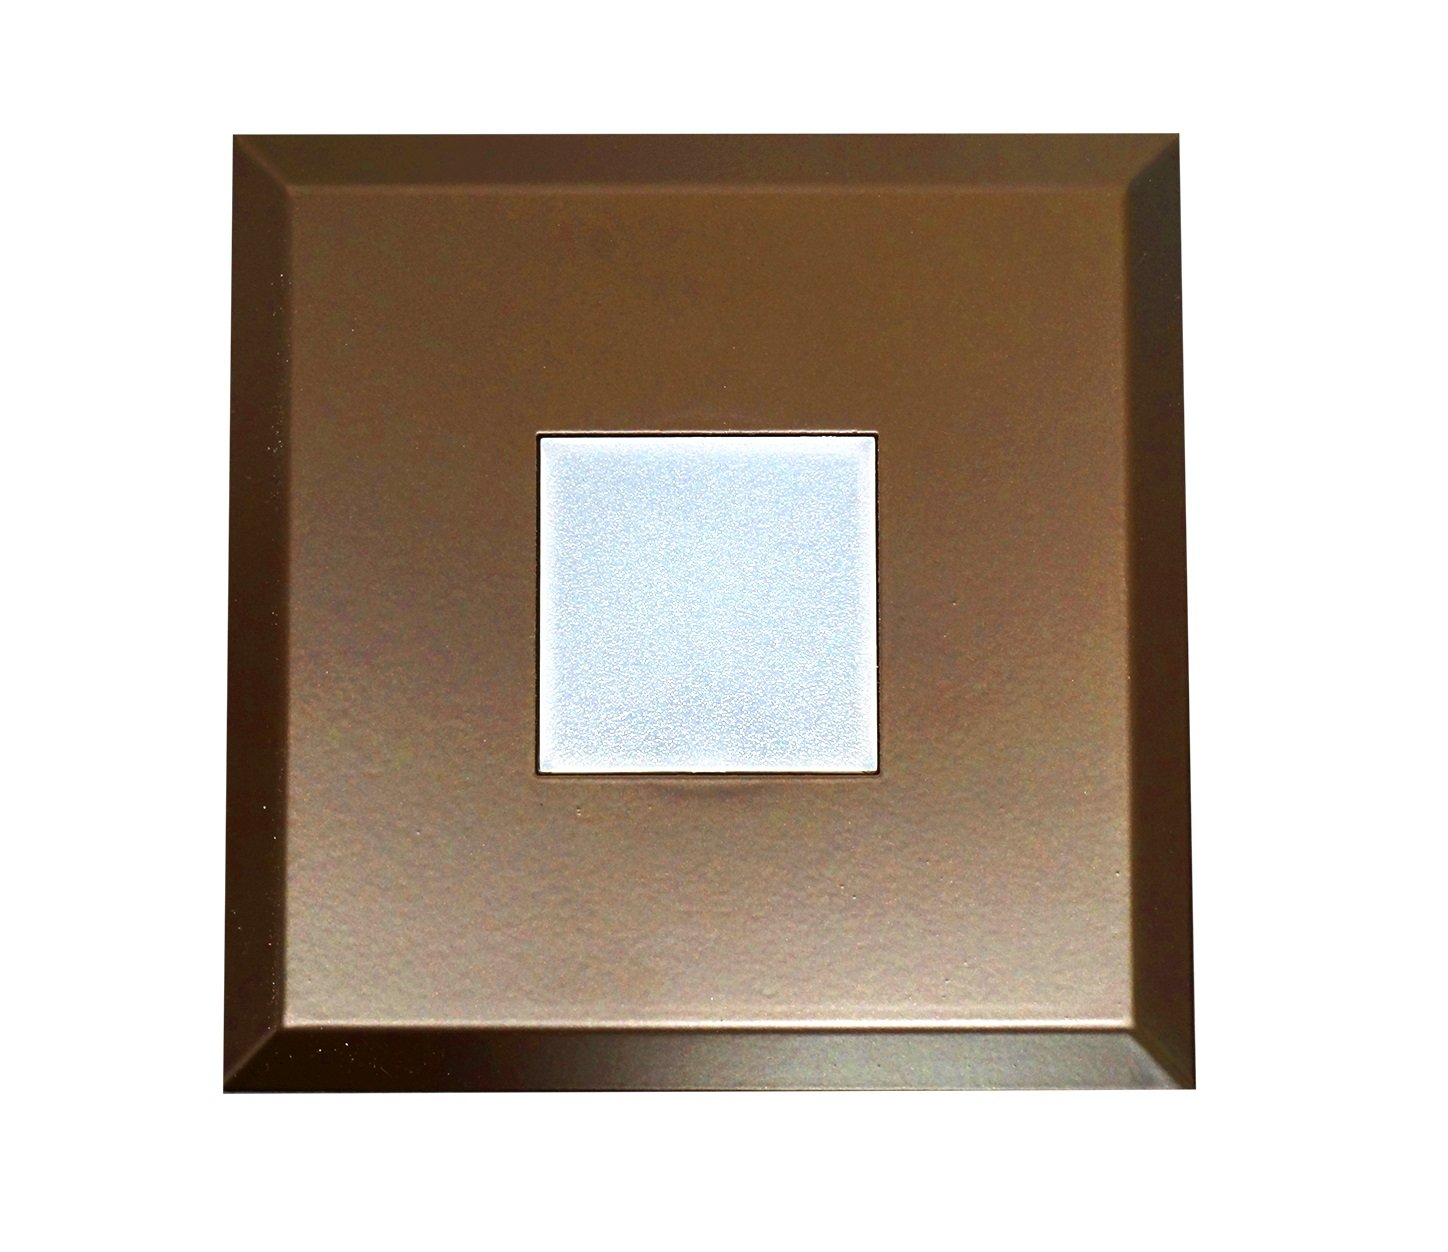 NICOR Lighting DLF SureFit Series Square Trim Plate, Oil-Rubbed Bronze (DLF-10-TRIM-SQ-OB)